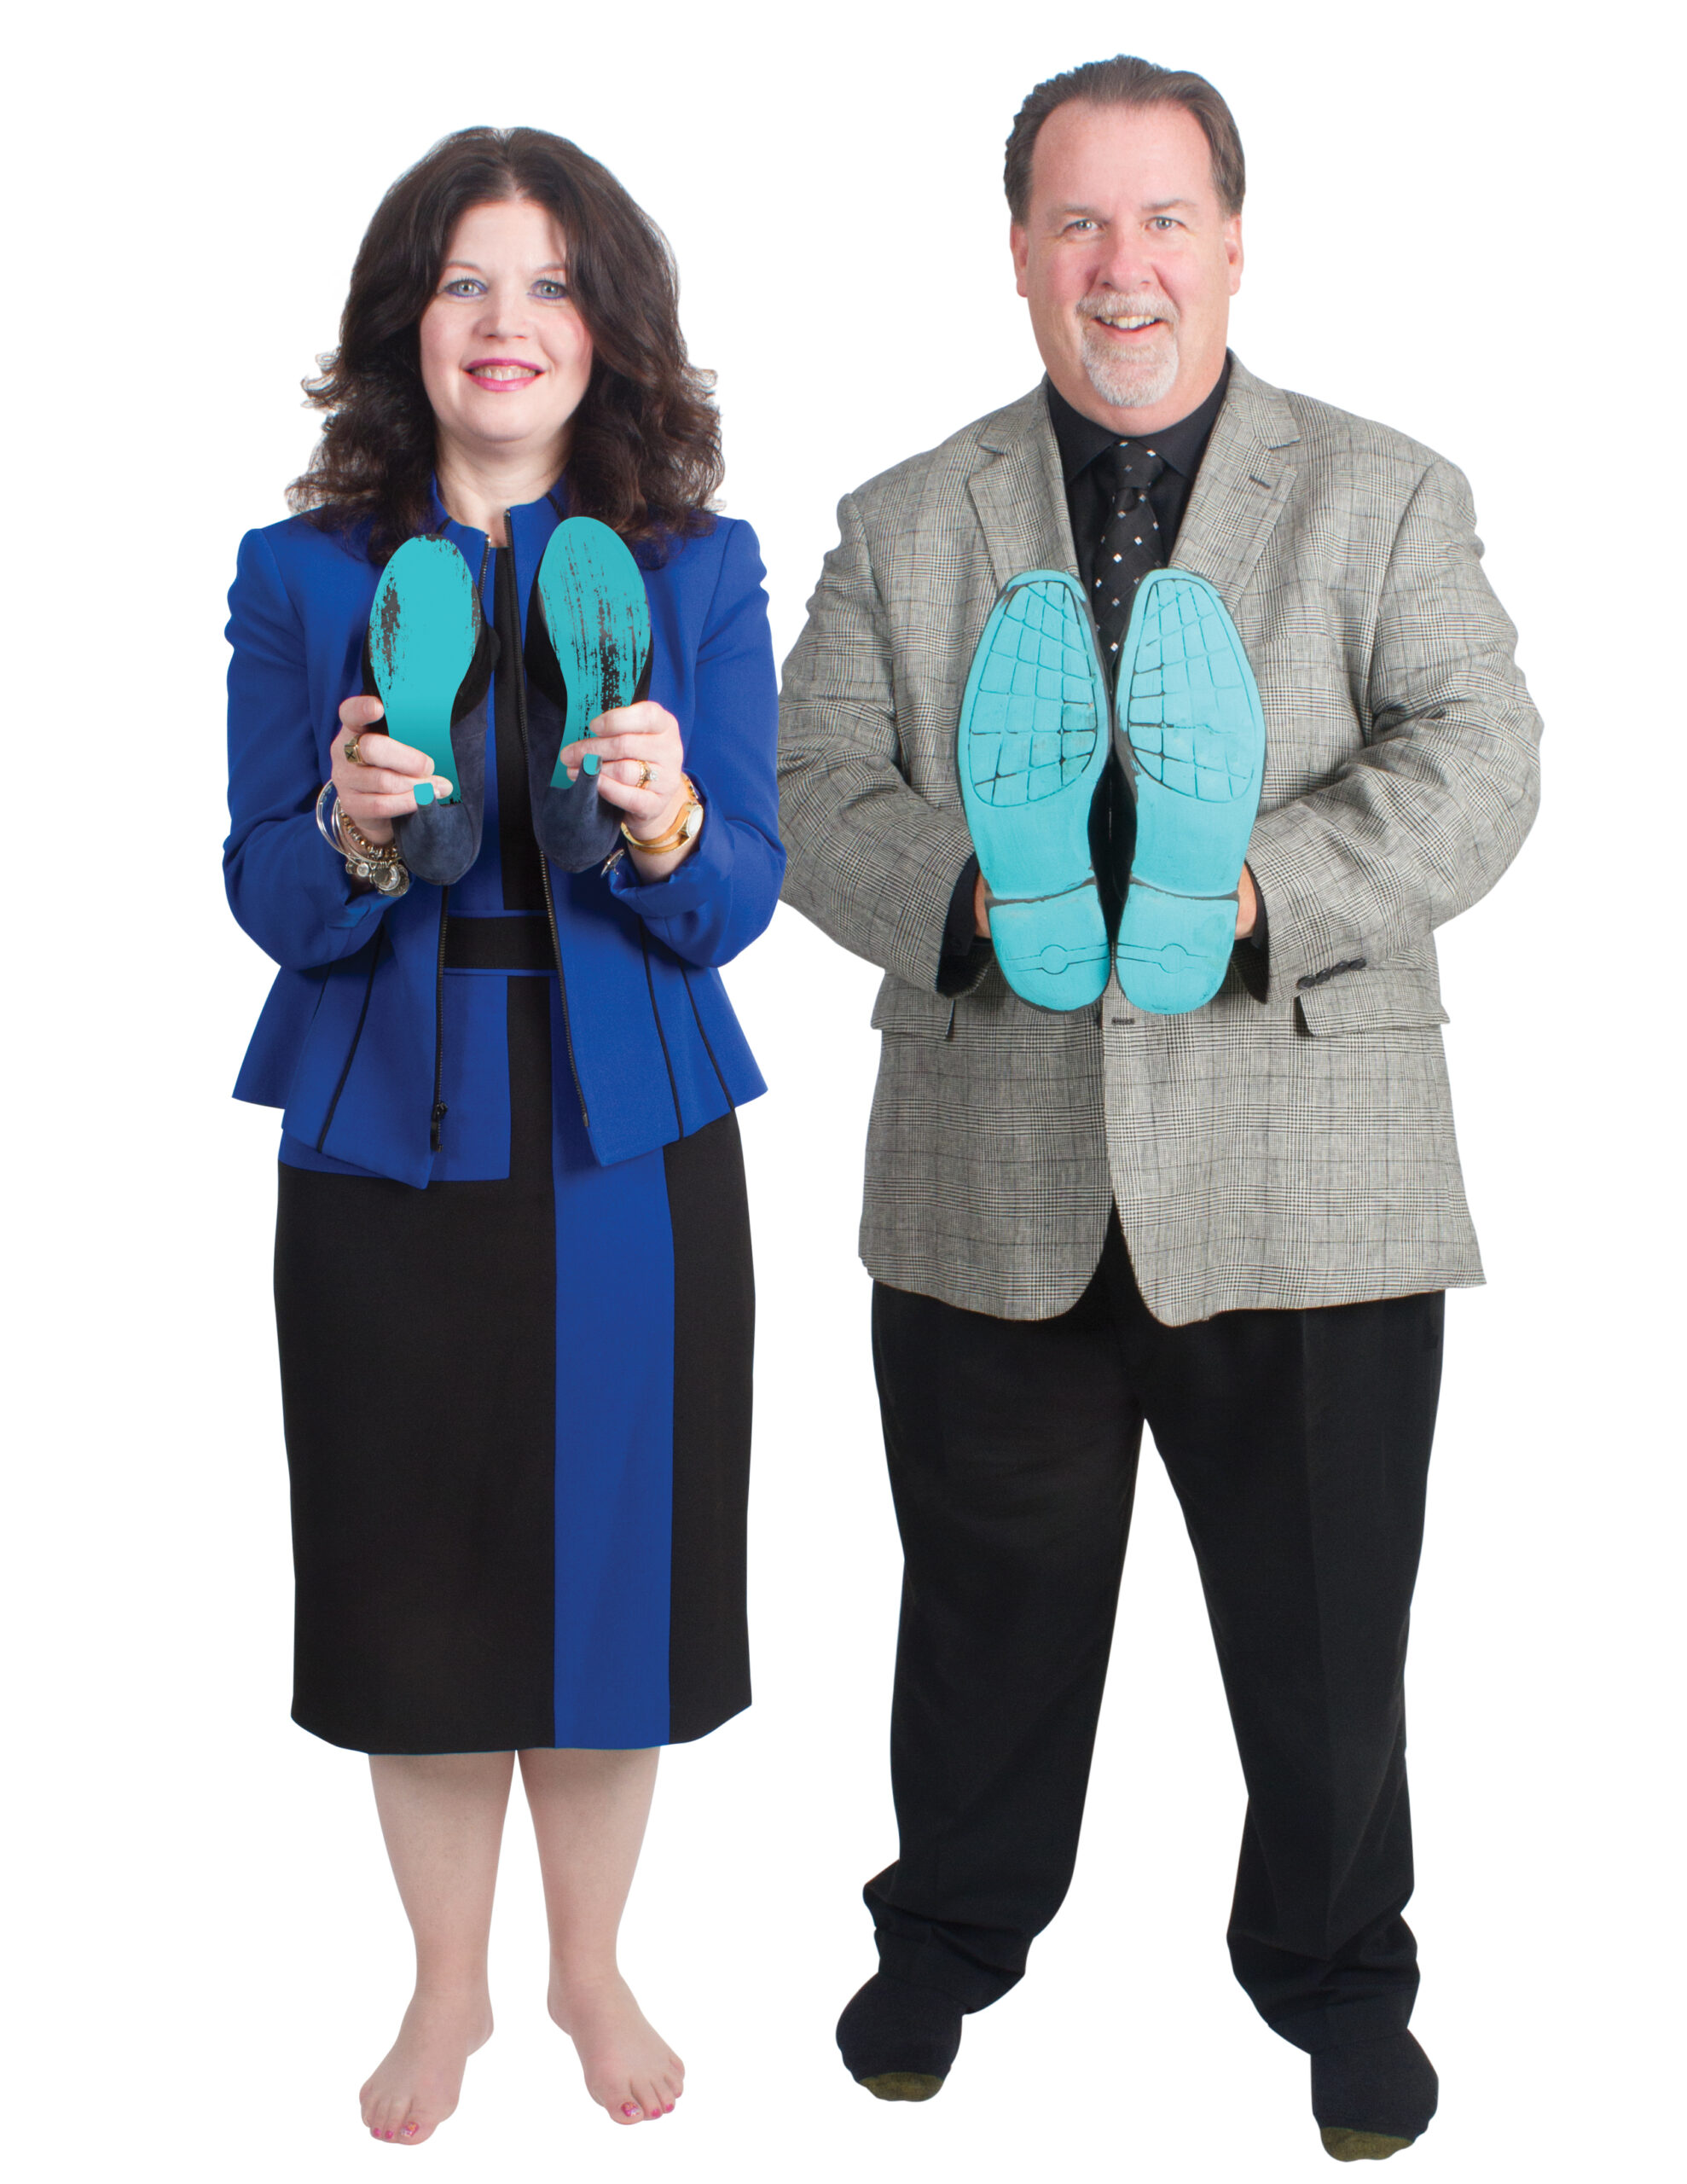 Patti France & John Fairley showing their soles